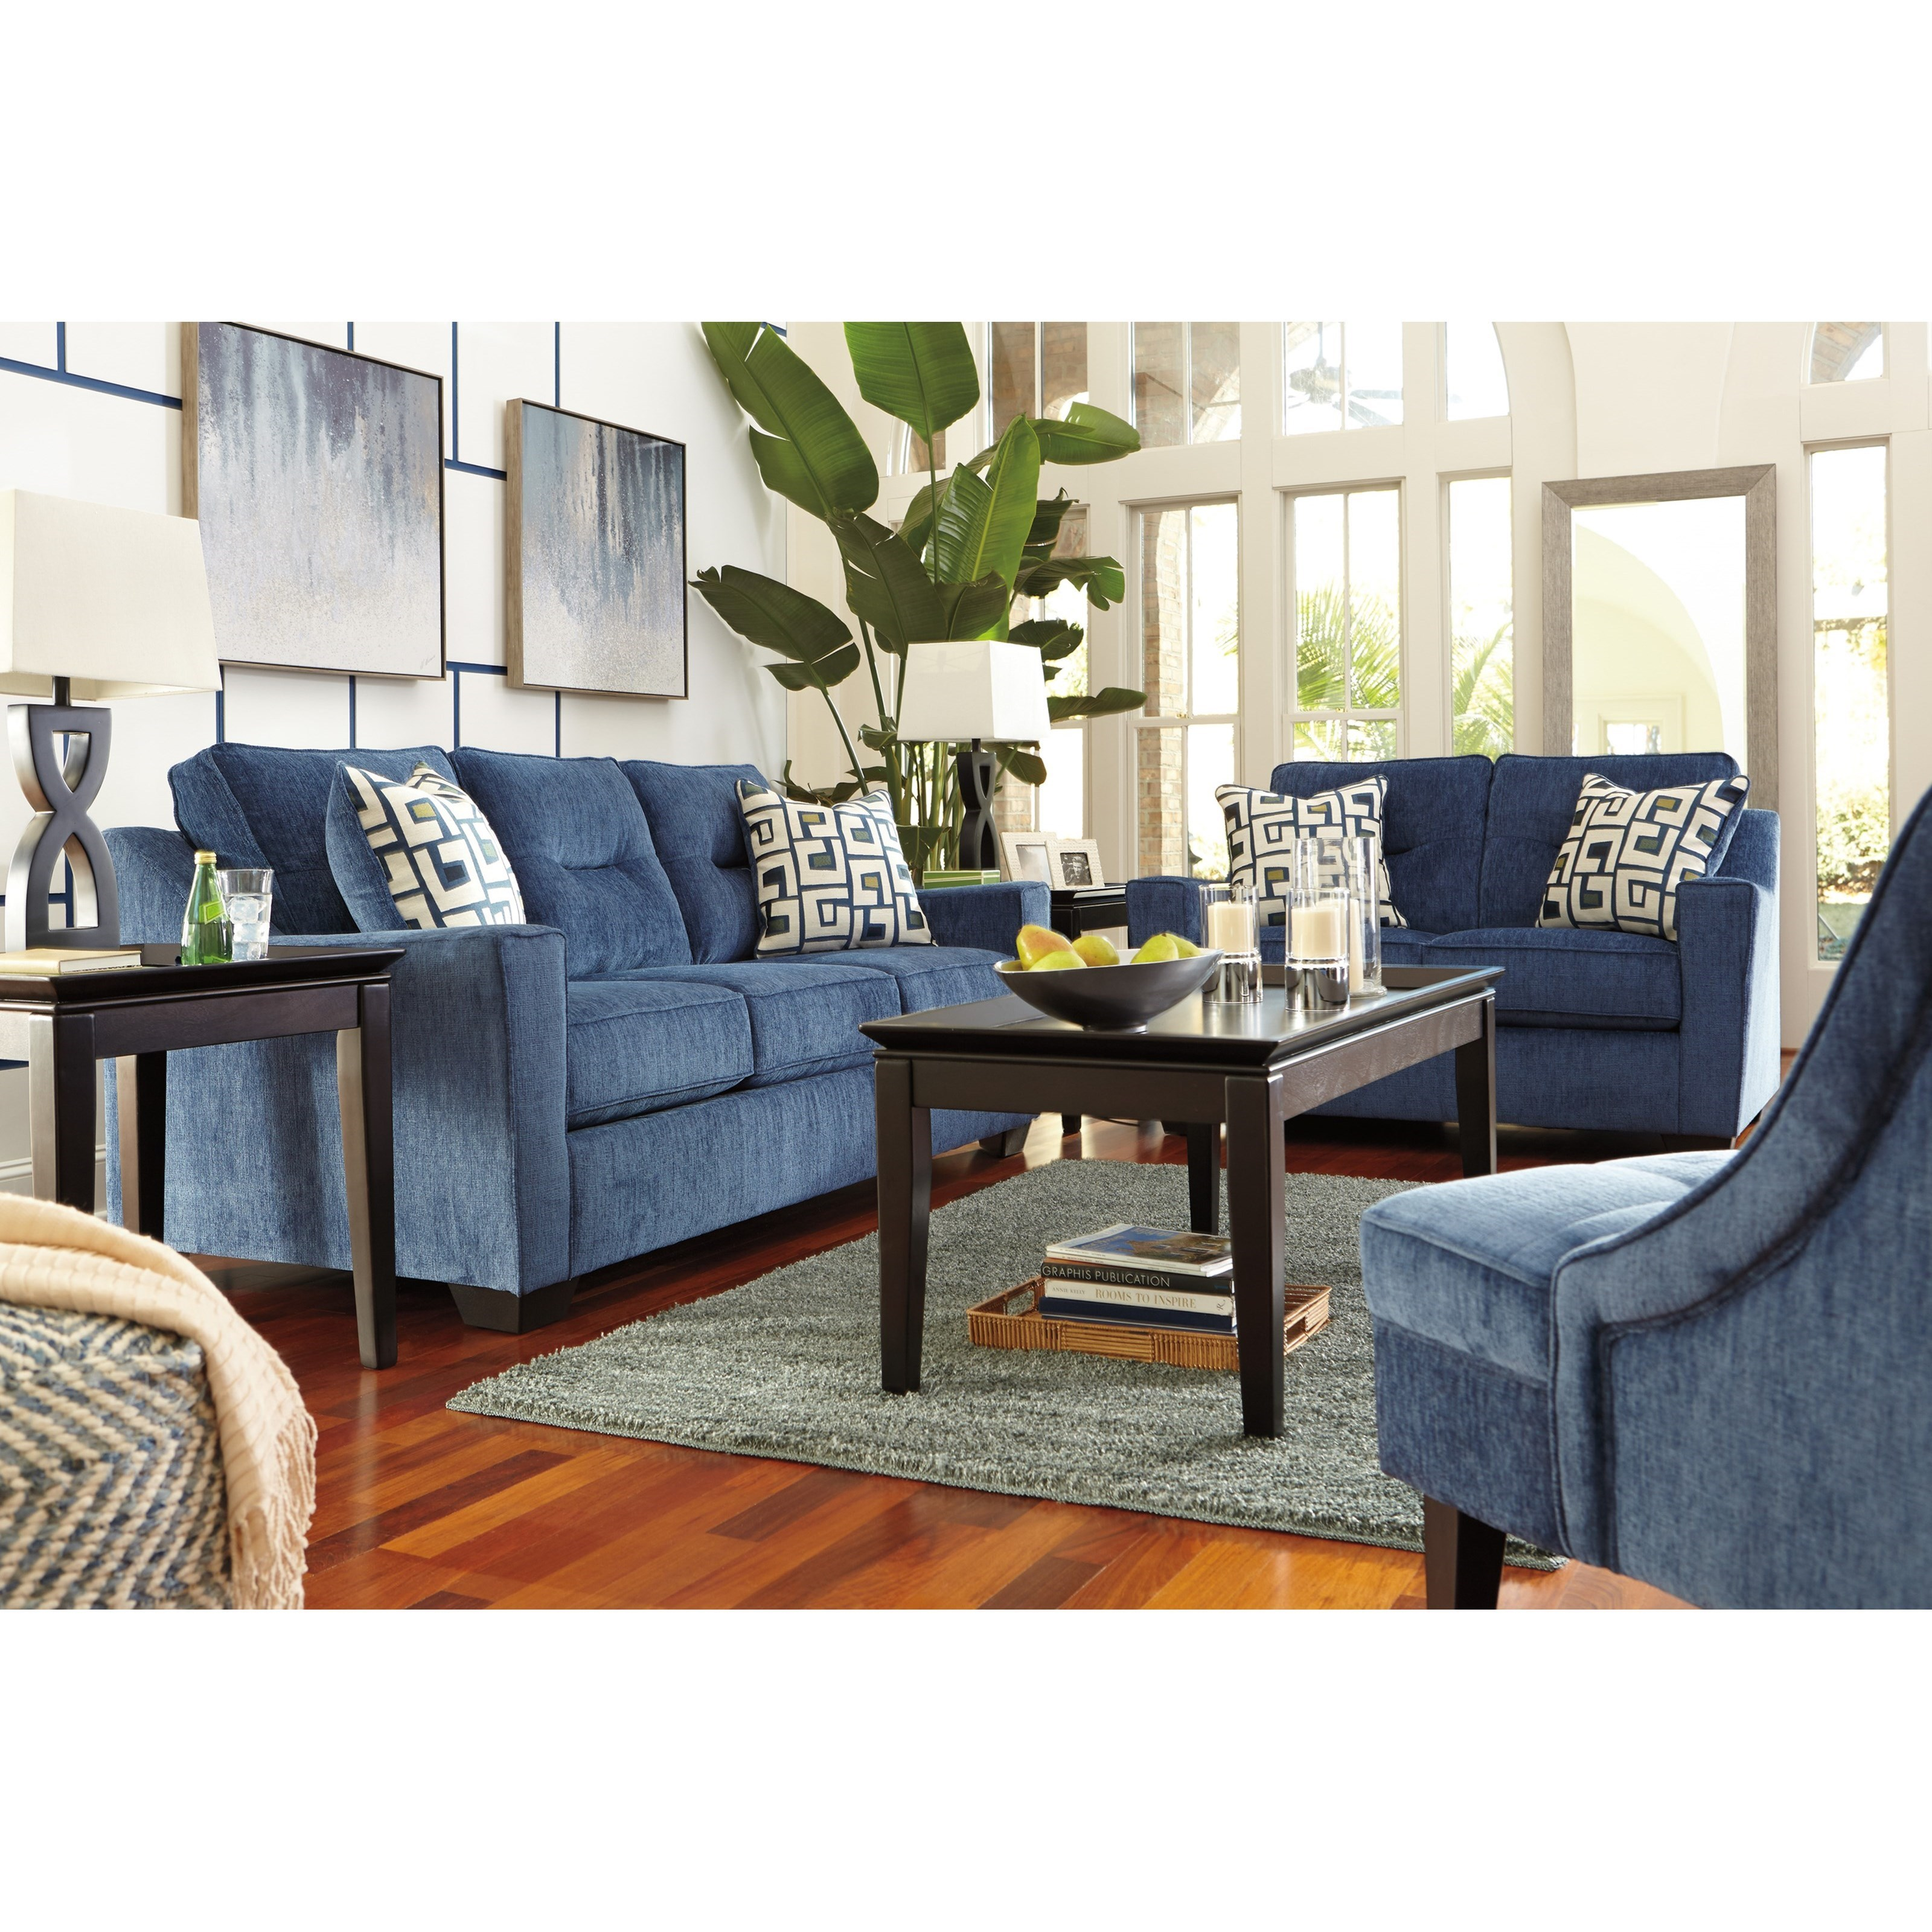 Ashley Furniture Cerdic Stationary Living Room Group L